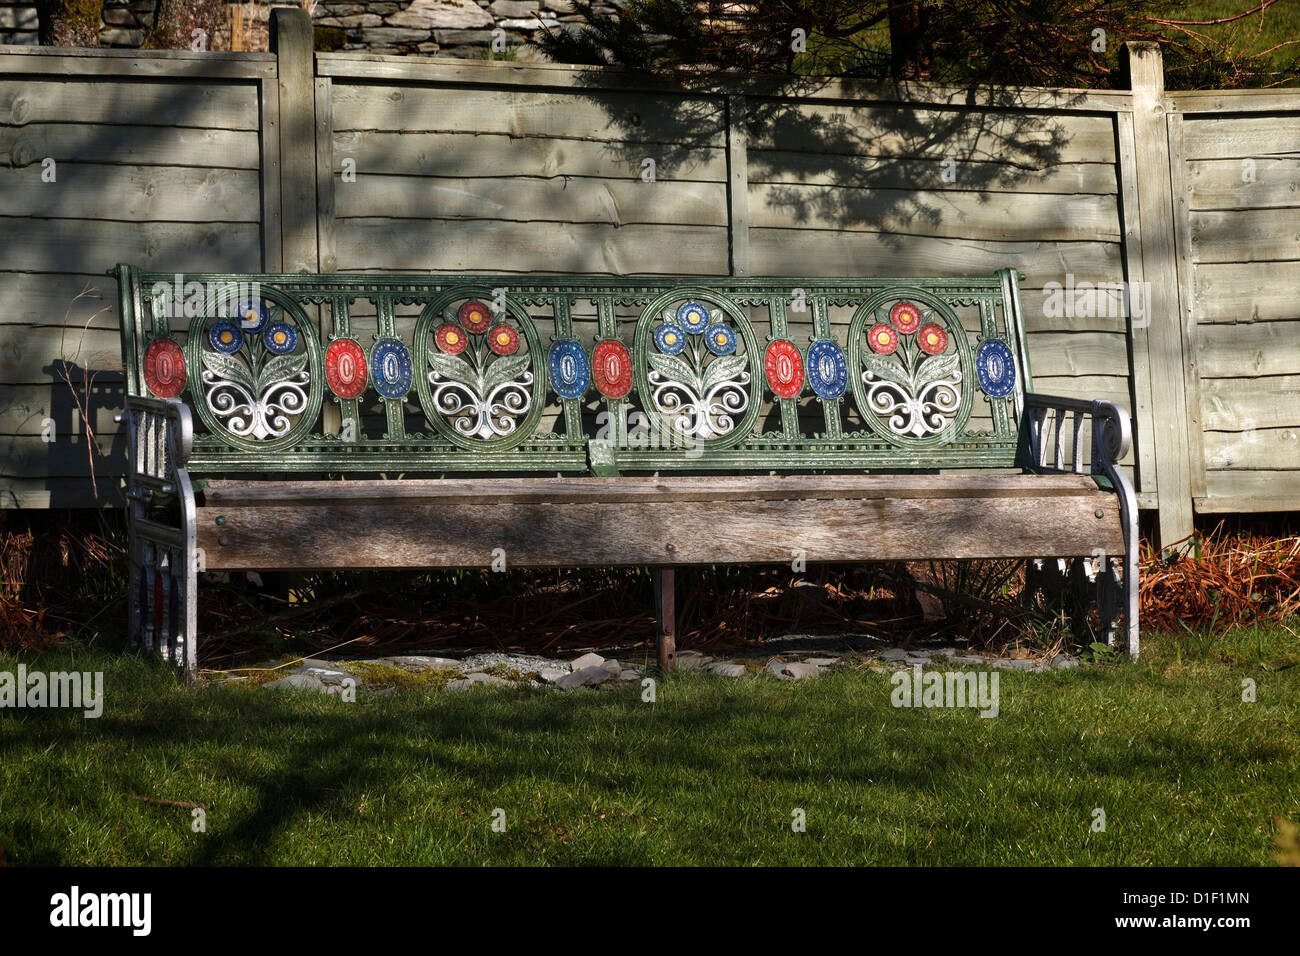 Old Ornate Floral Painted Cast Iron Metal And Wooden Garden Bench Seat,  Cumbria, England